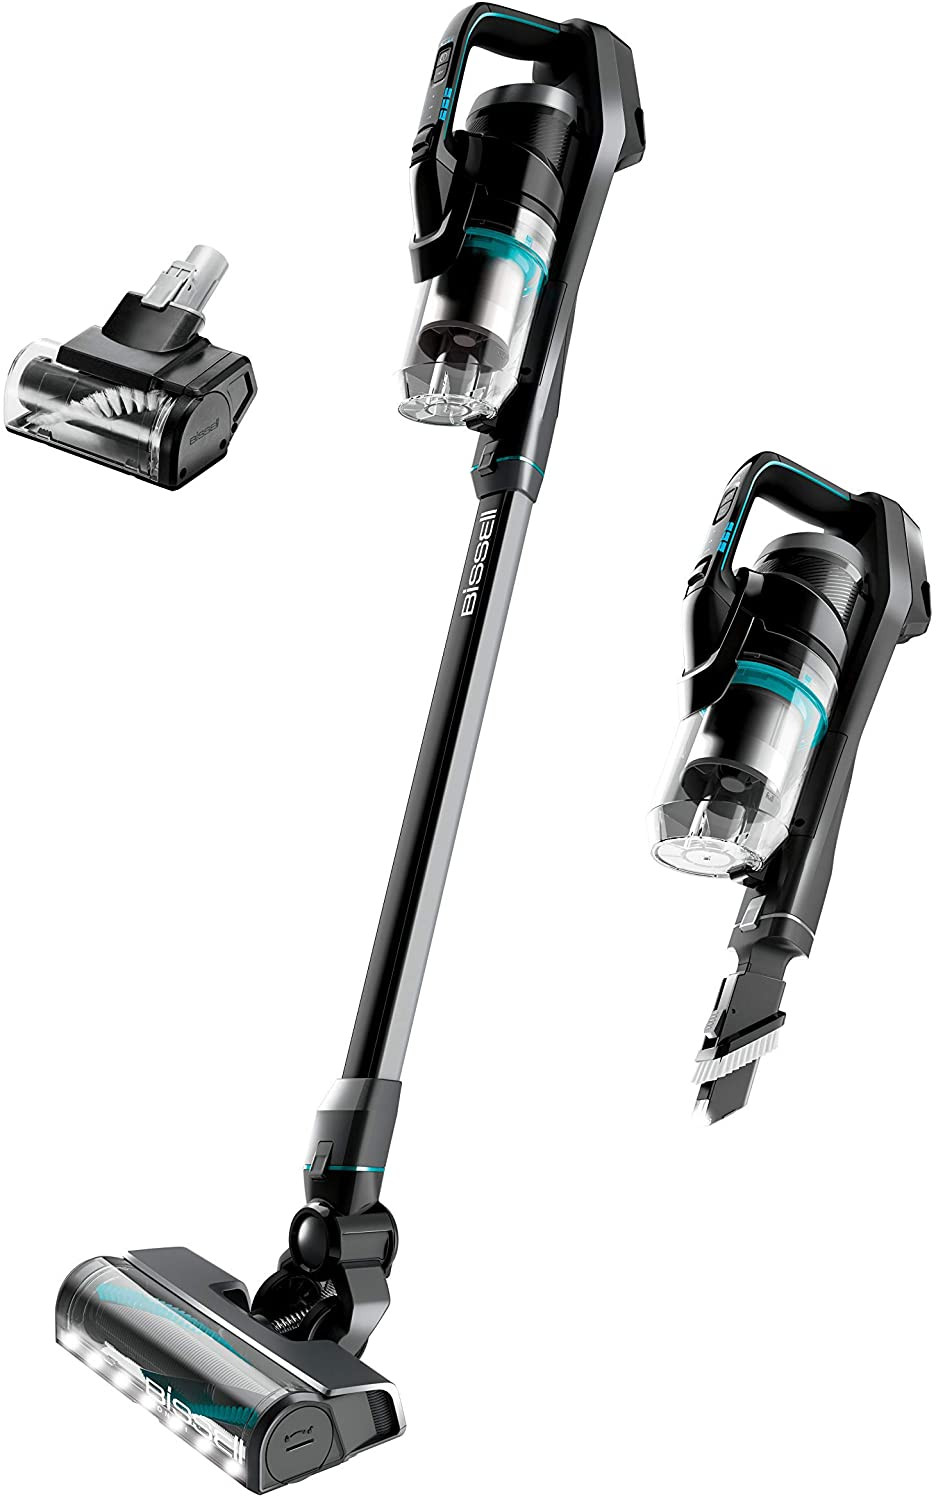 BISSELL ICONpet Cordless with Tangle Free Brushroll, Smart Seal Filtration, Lightweight Stick Hand Vacuum Cleaner